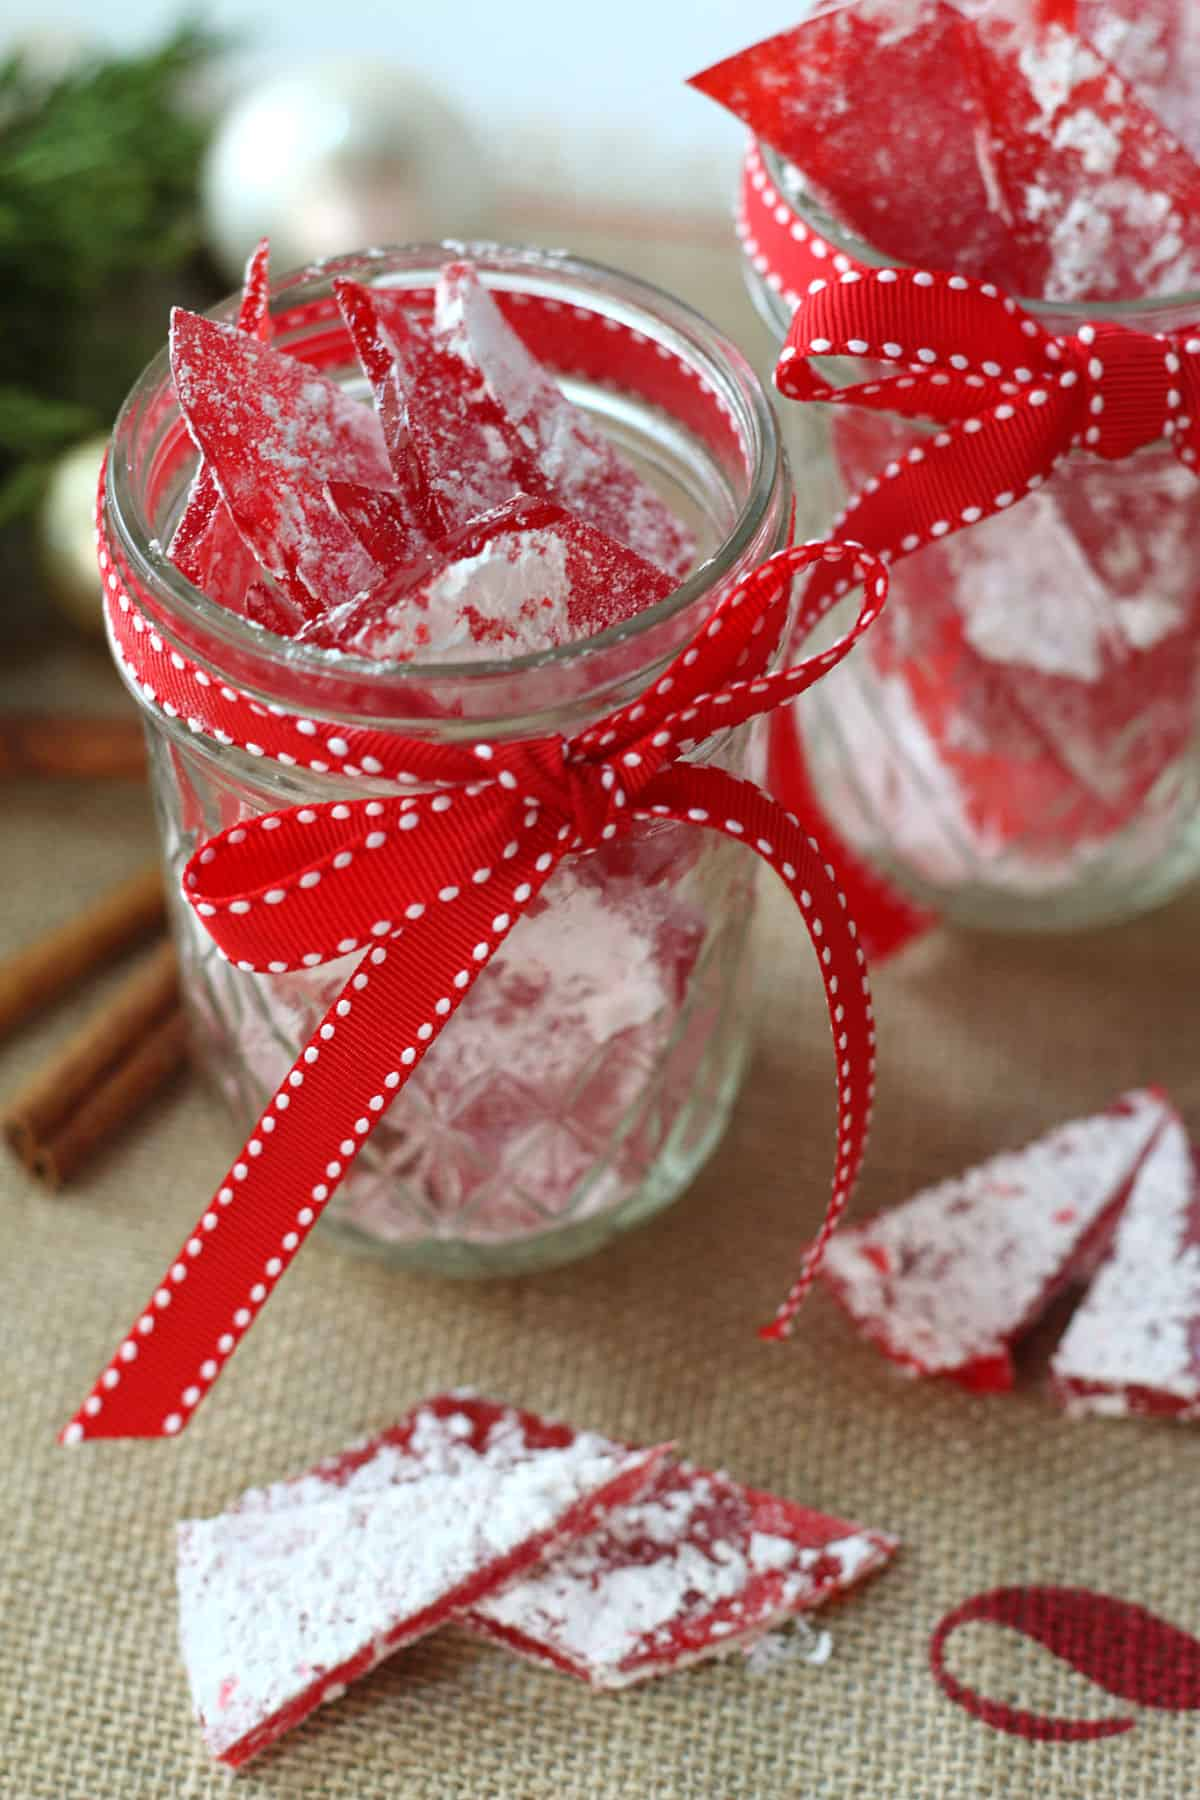 Cinnamon glass candy in a mason jar with a red ribbon.